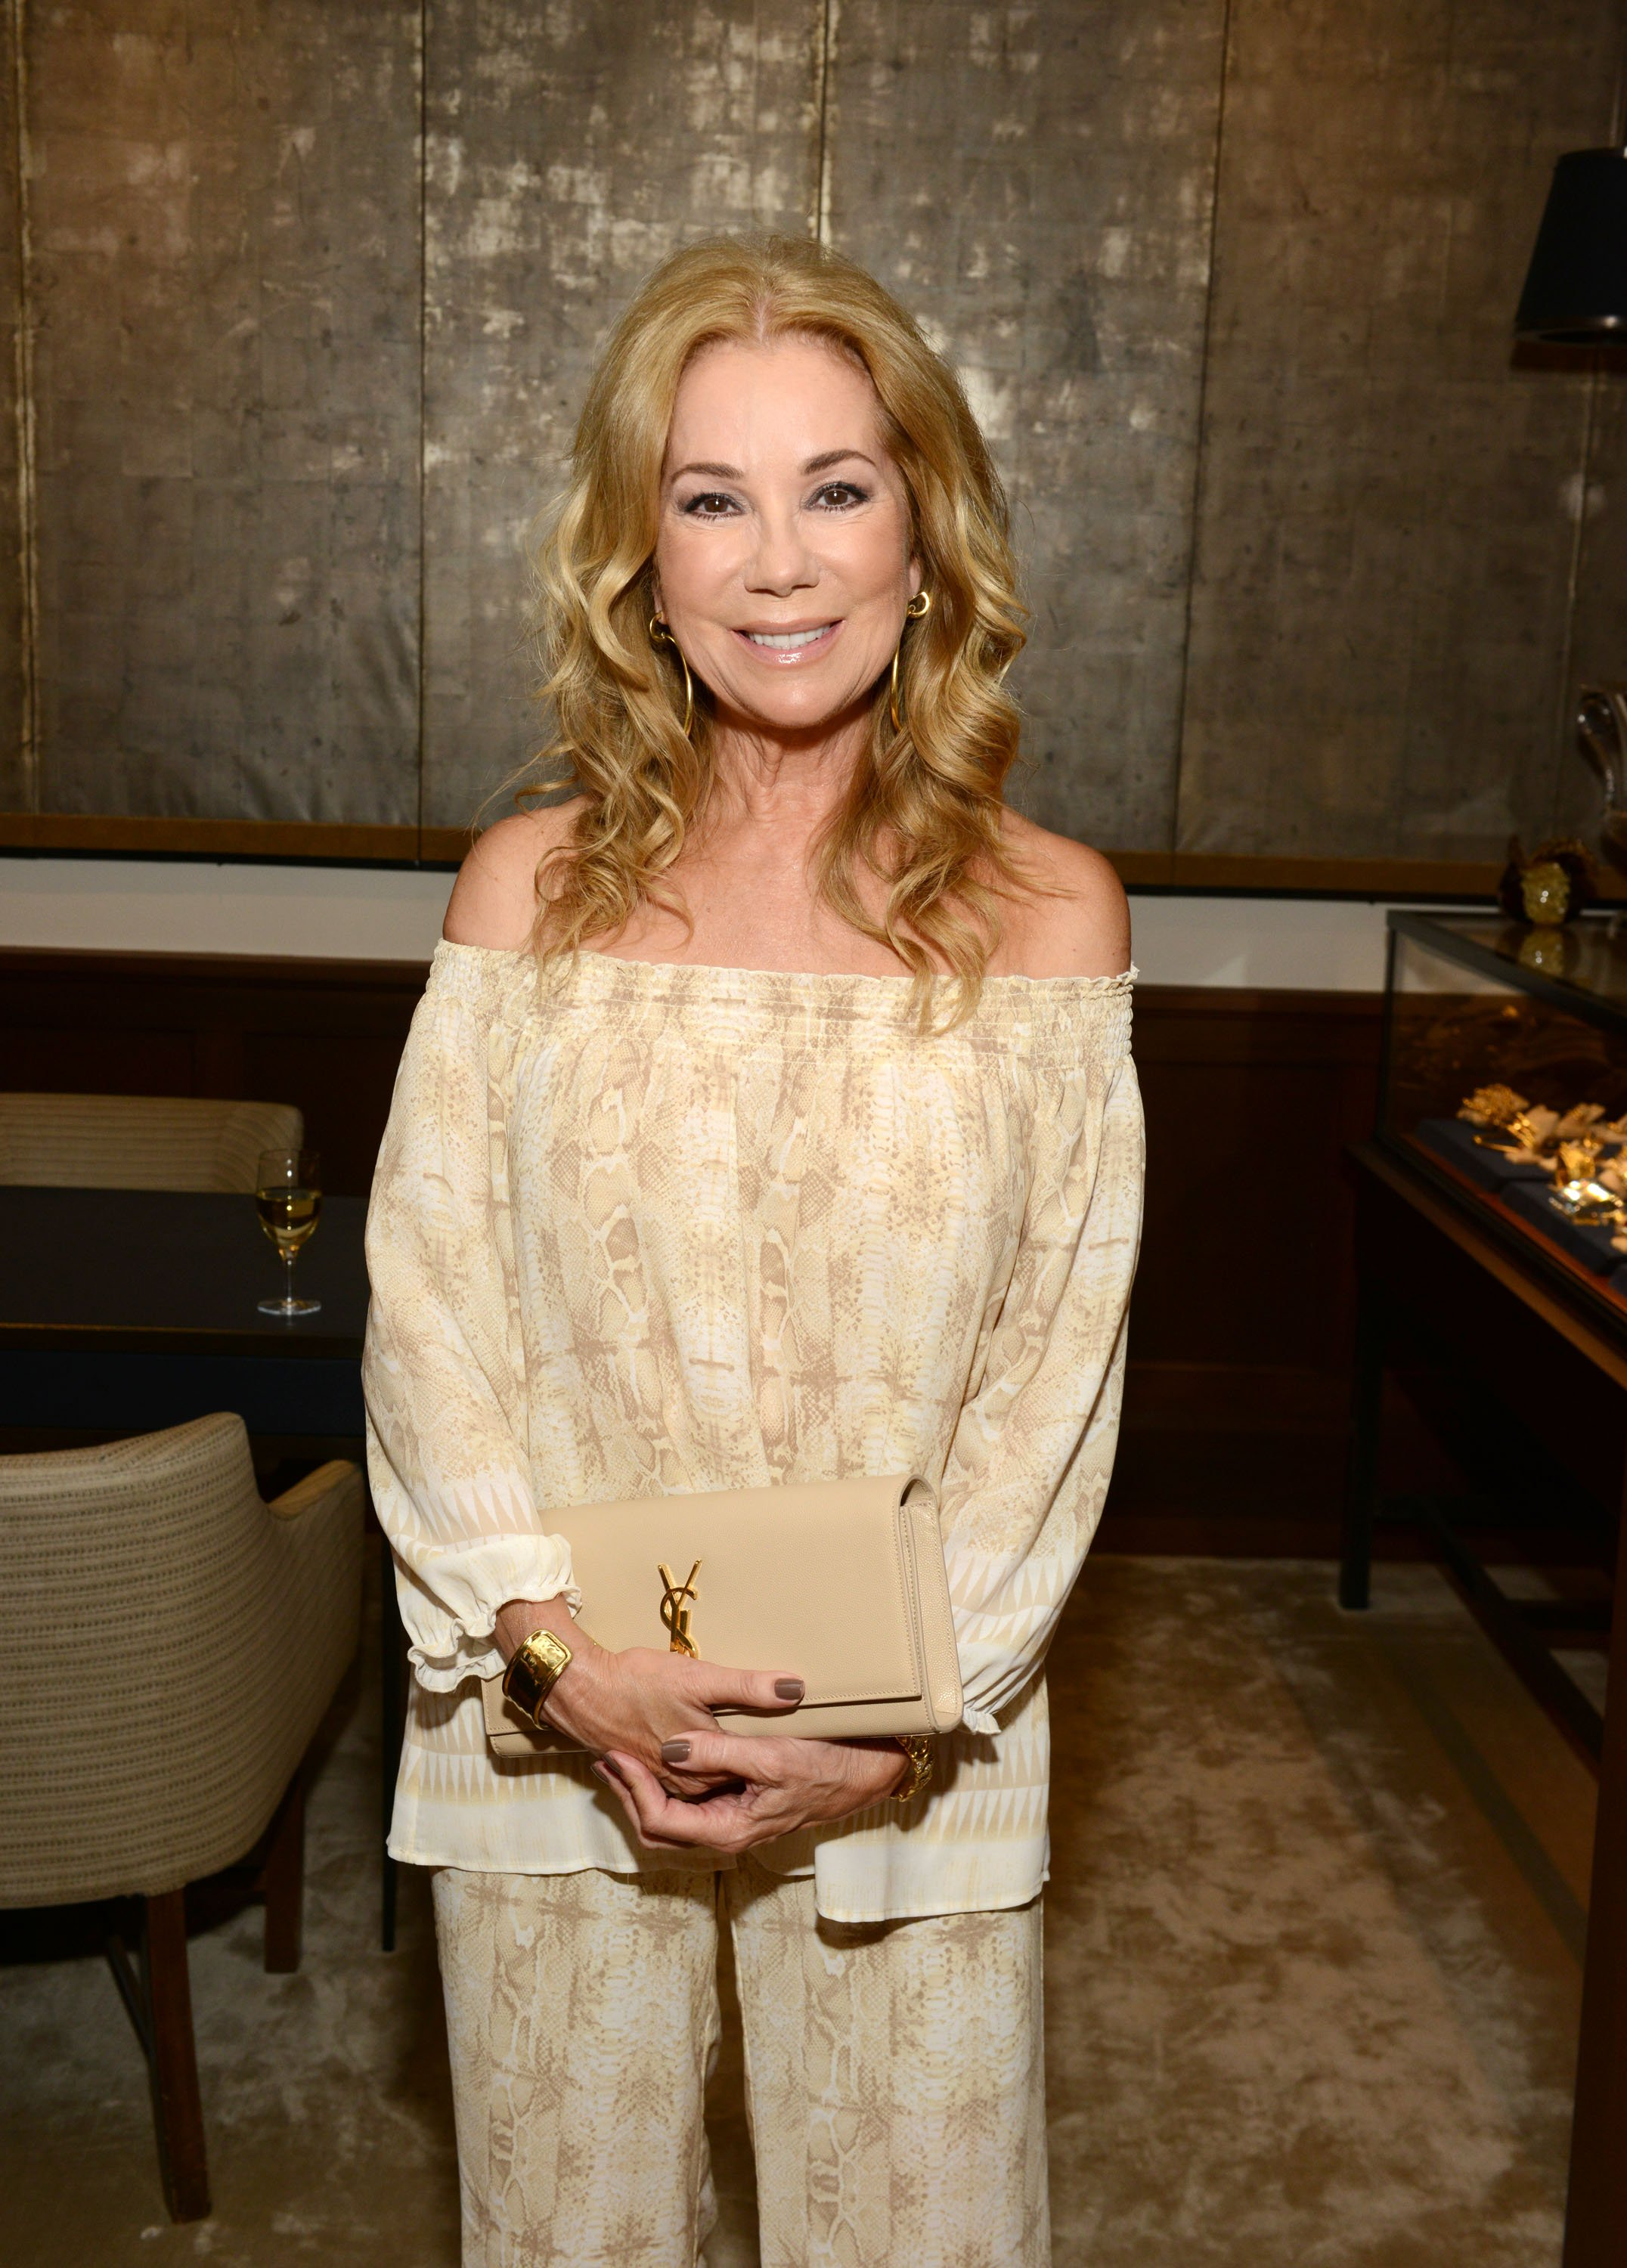 Image Credits: Getty Images / Noam Galai | Kathie Lee Gifford attends Changemaker cocktail reception at the 2016 Greenwich International Film Festival day 2 on June 10, 2016 at Betteridge in Greenwich, Connecticut.